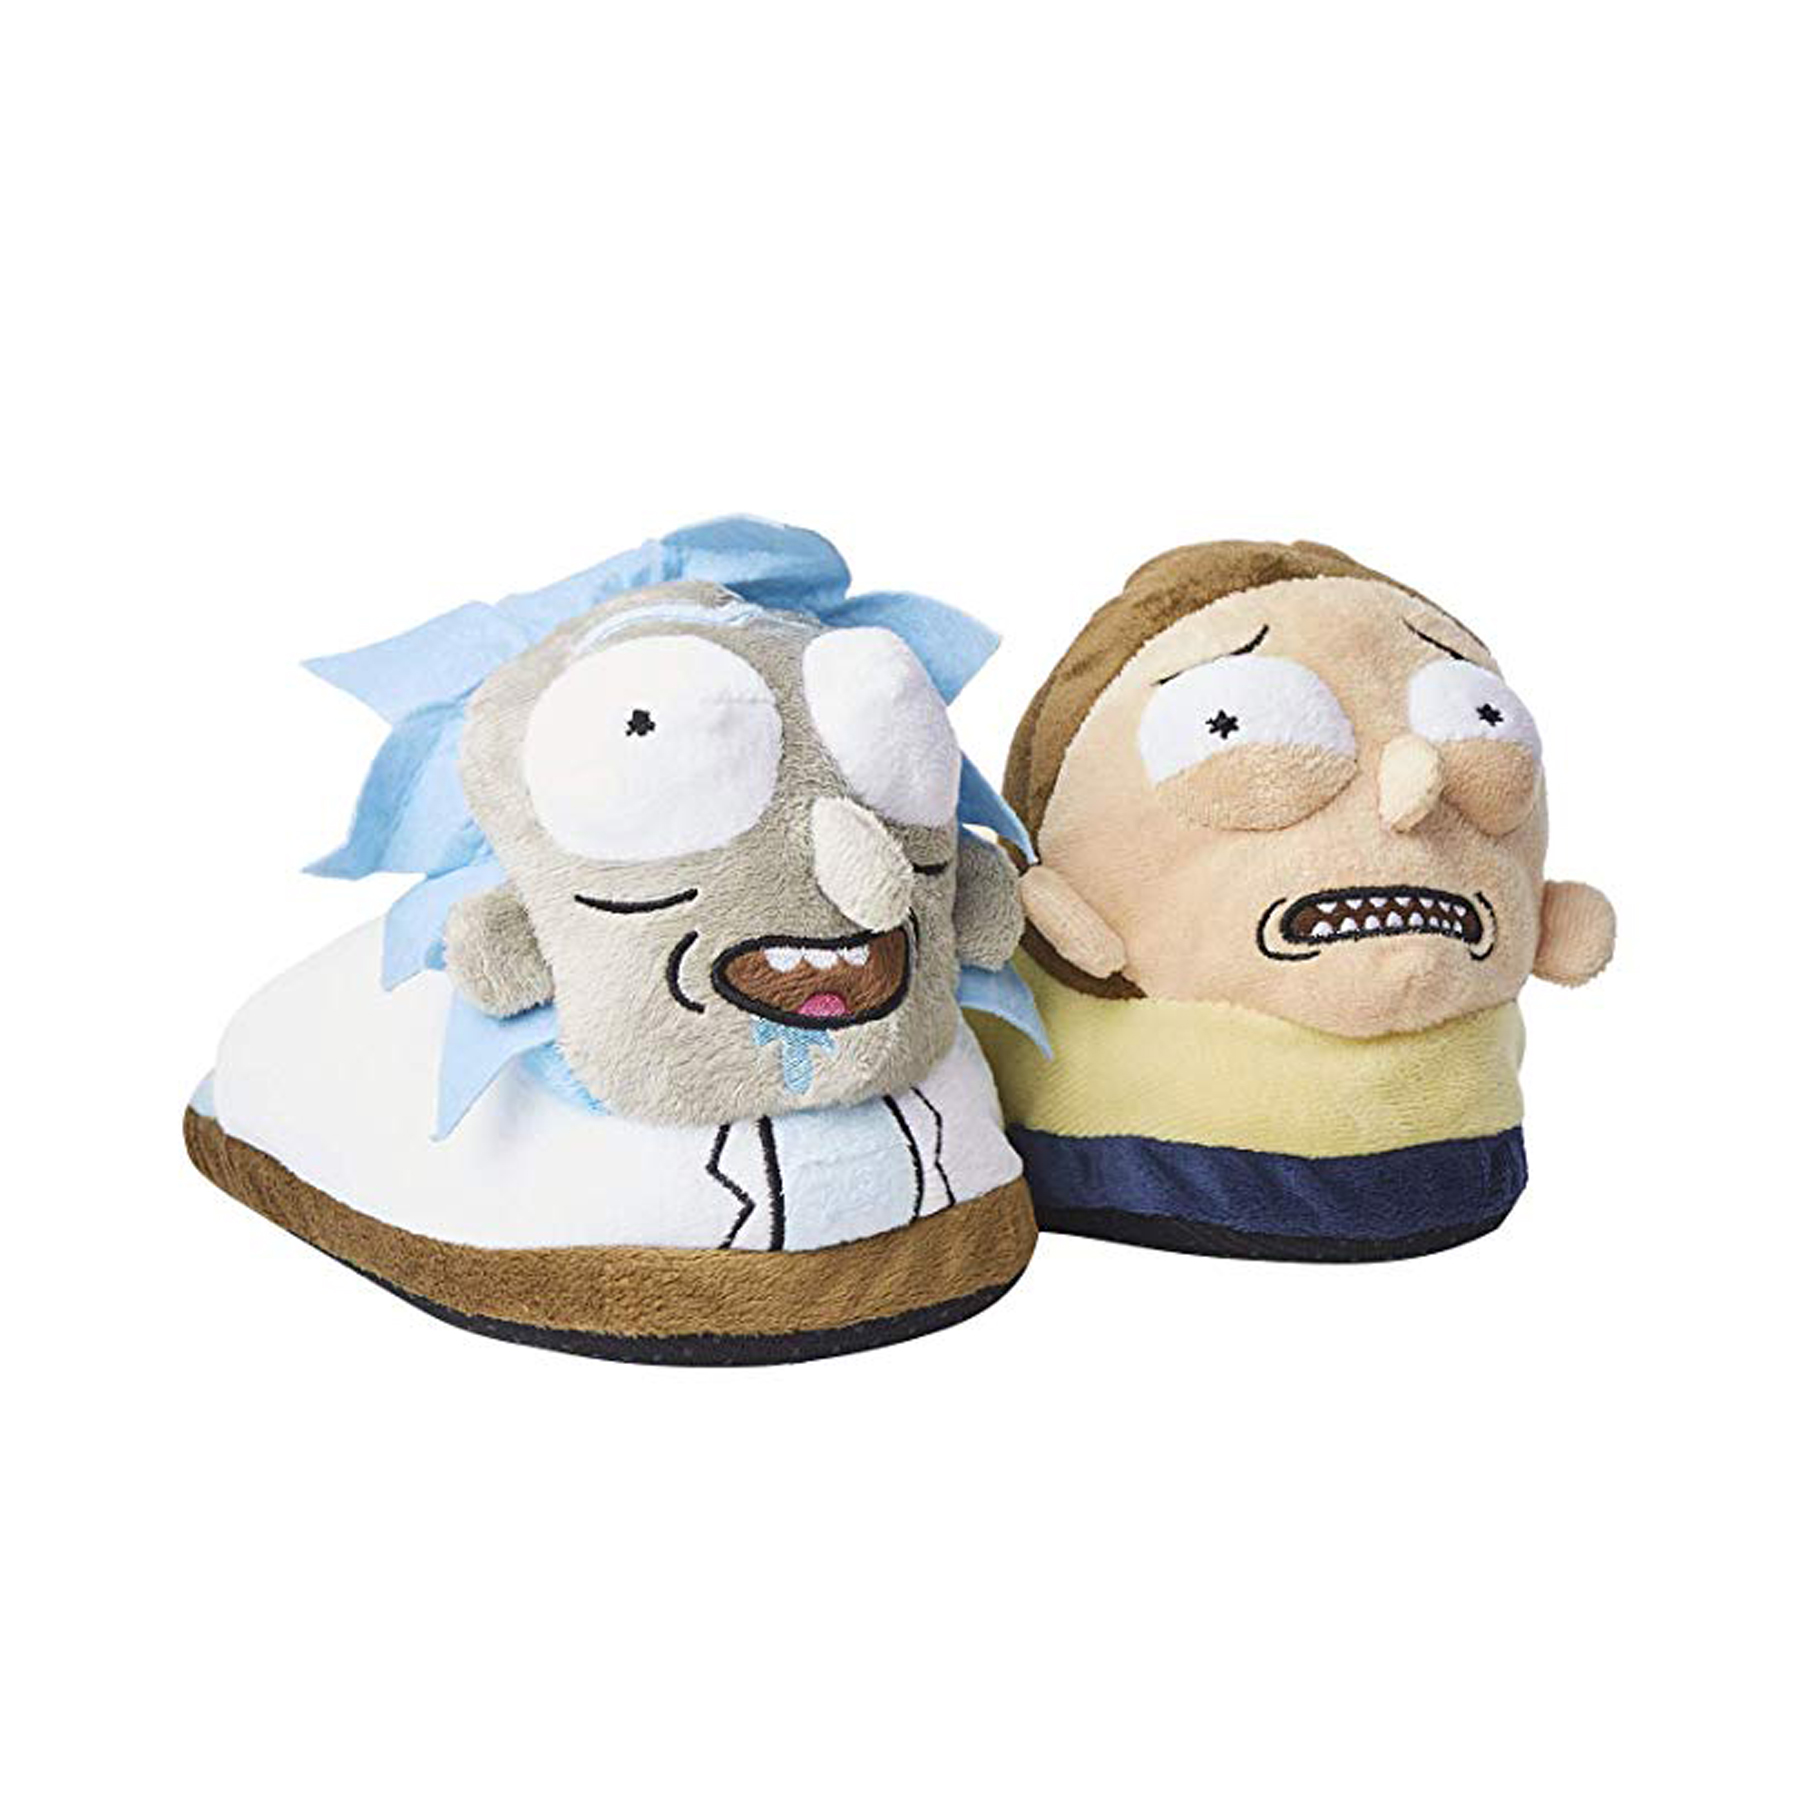 Funny gifts for men - Rick and Morty Slippers